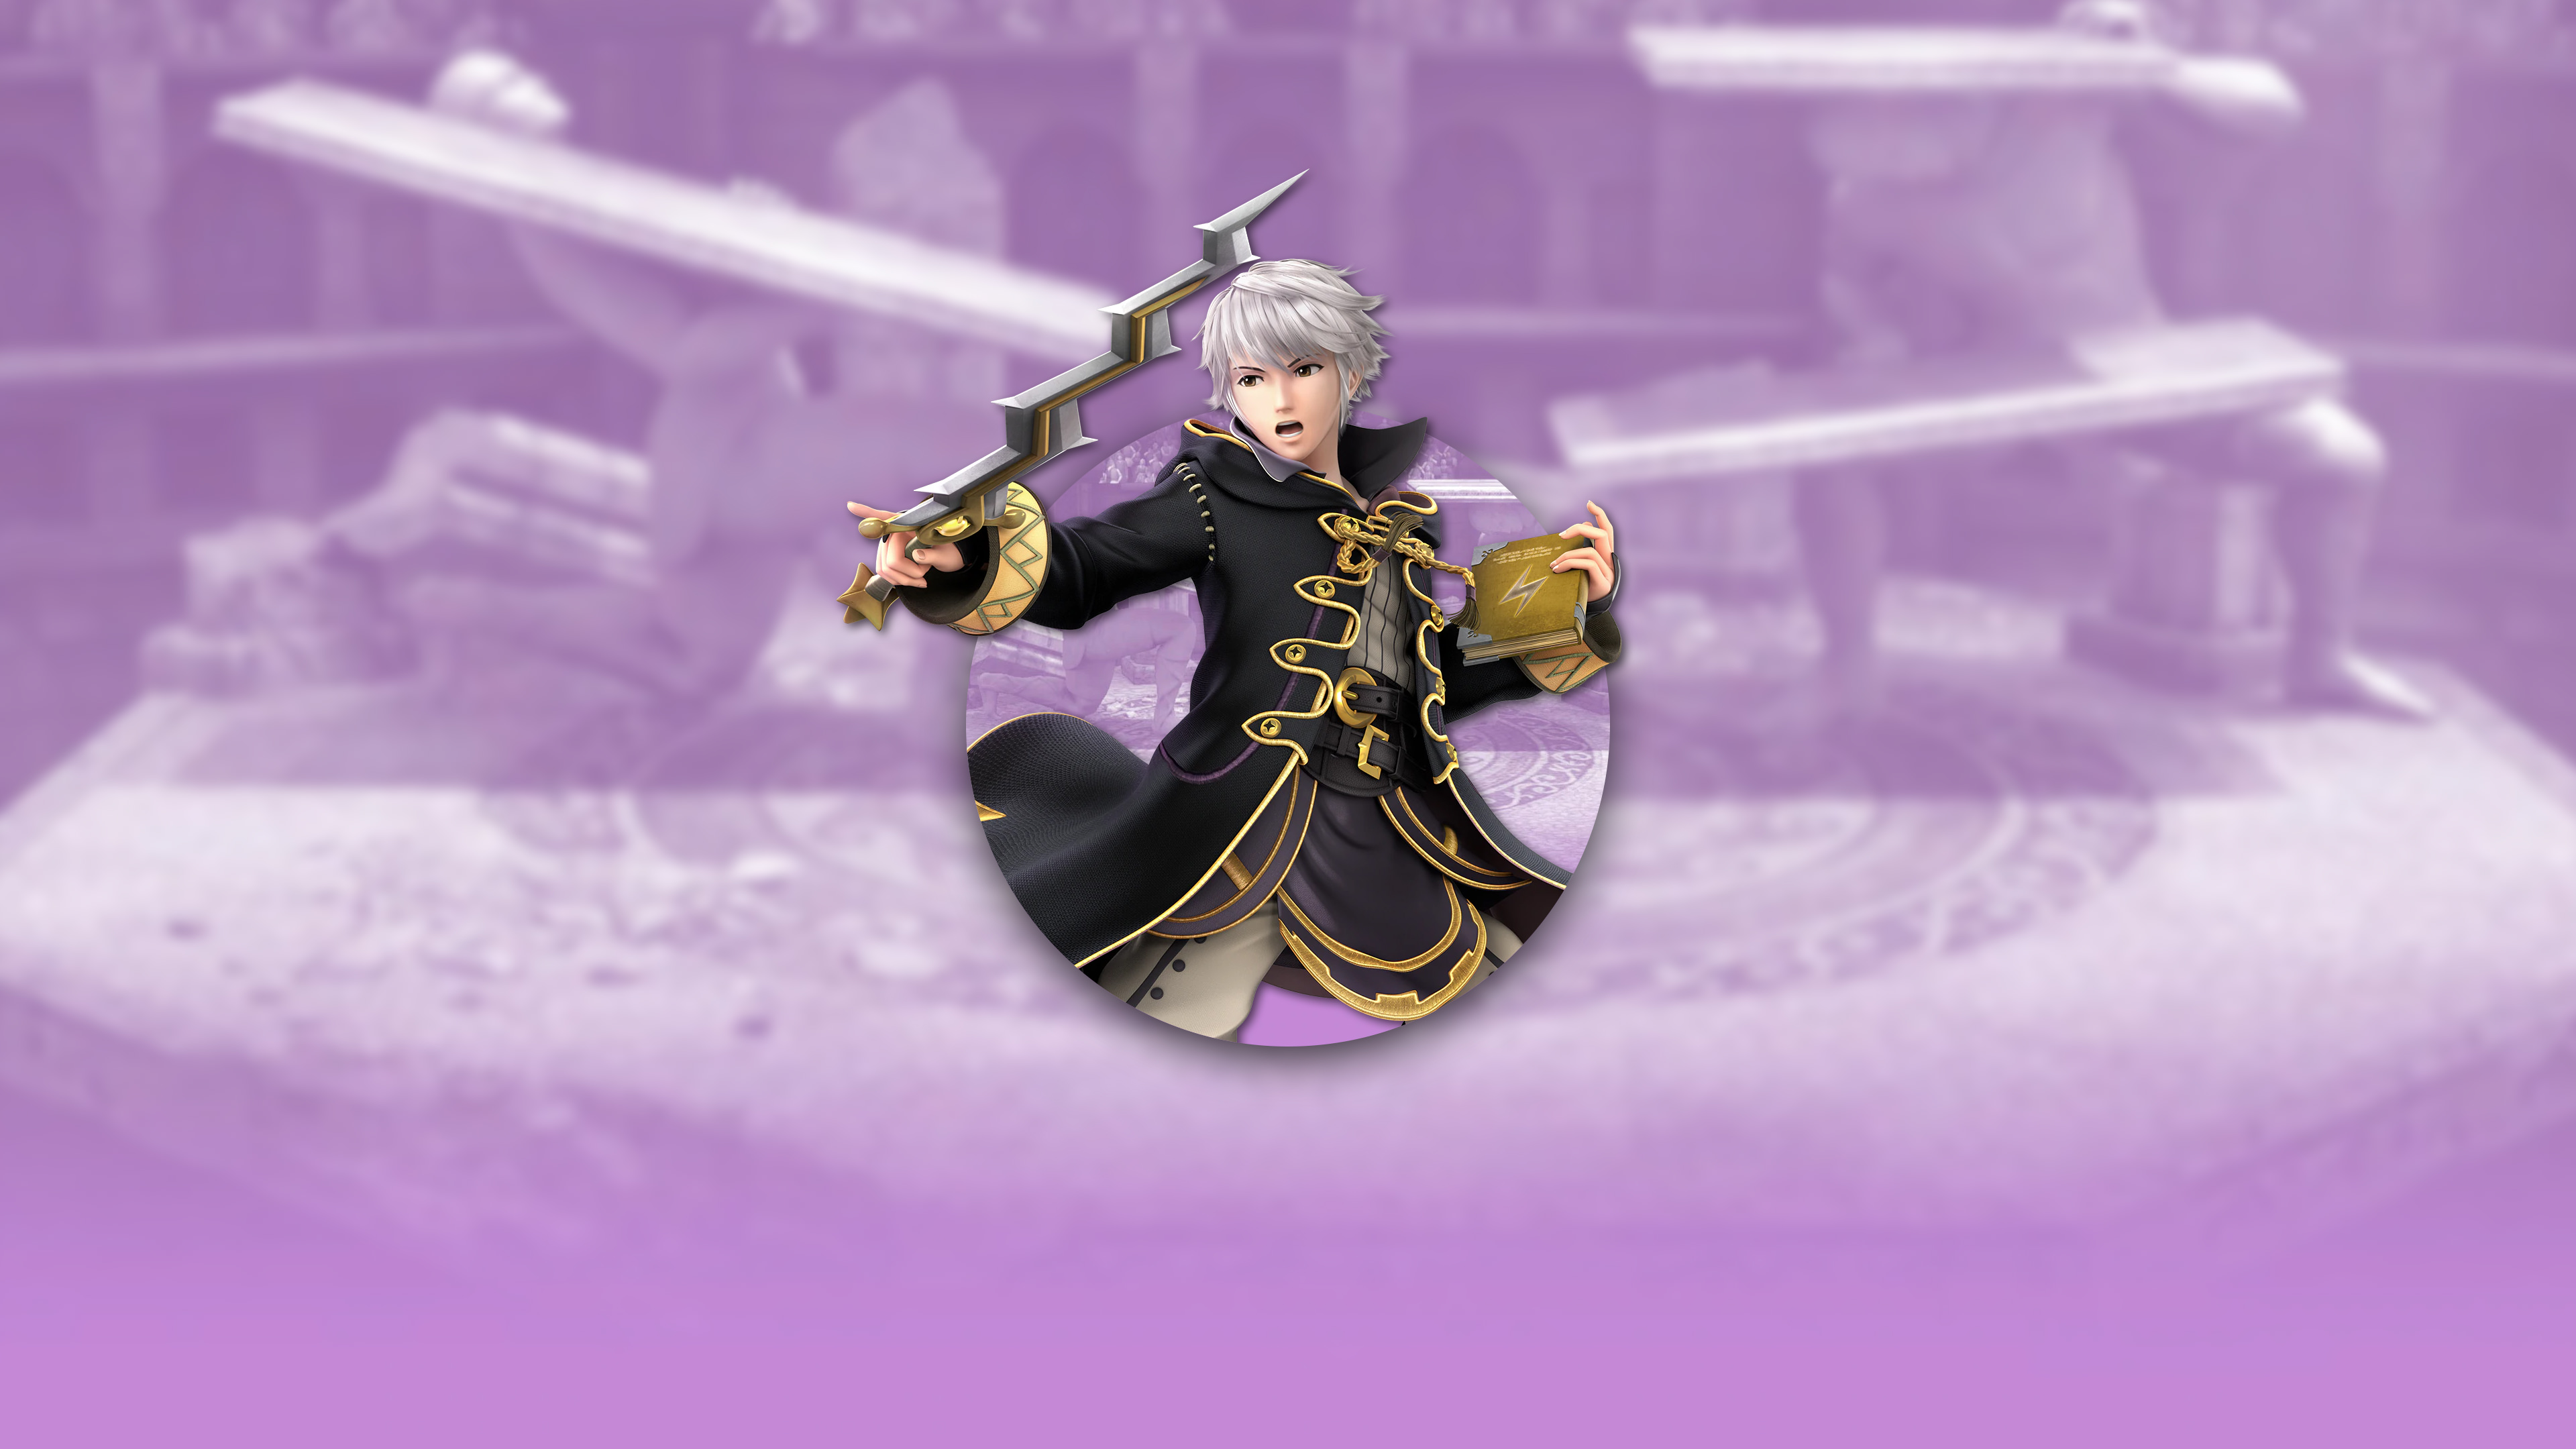 super smash bros ultimate robin male uhd 4k wallpaper